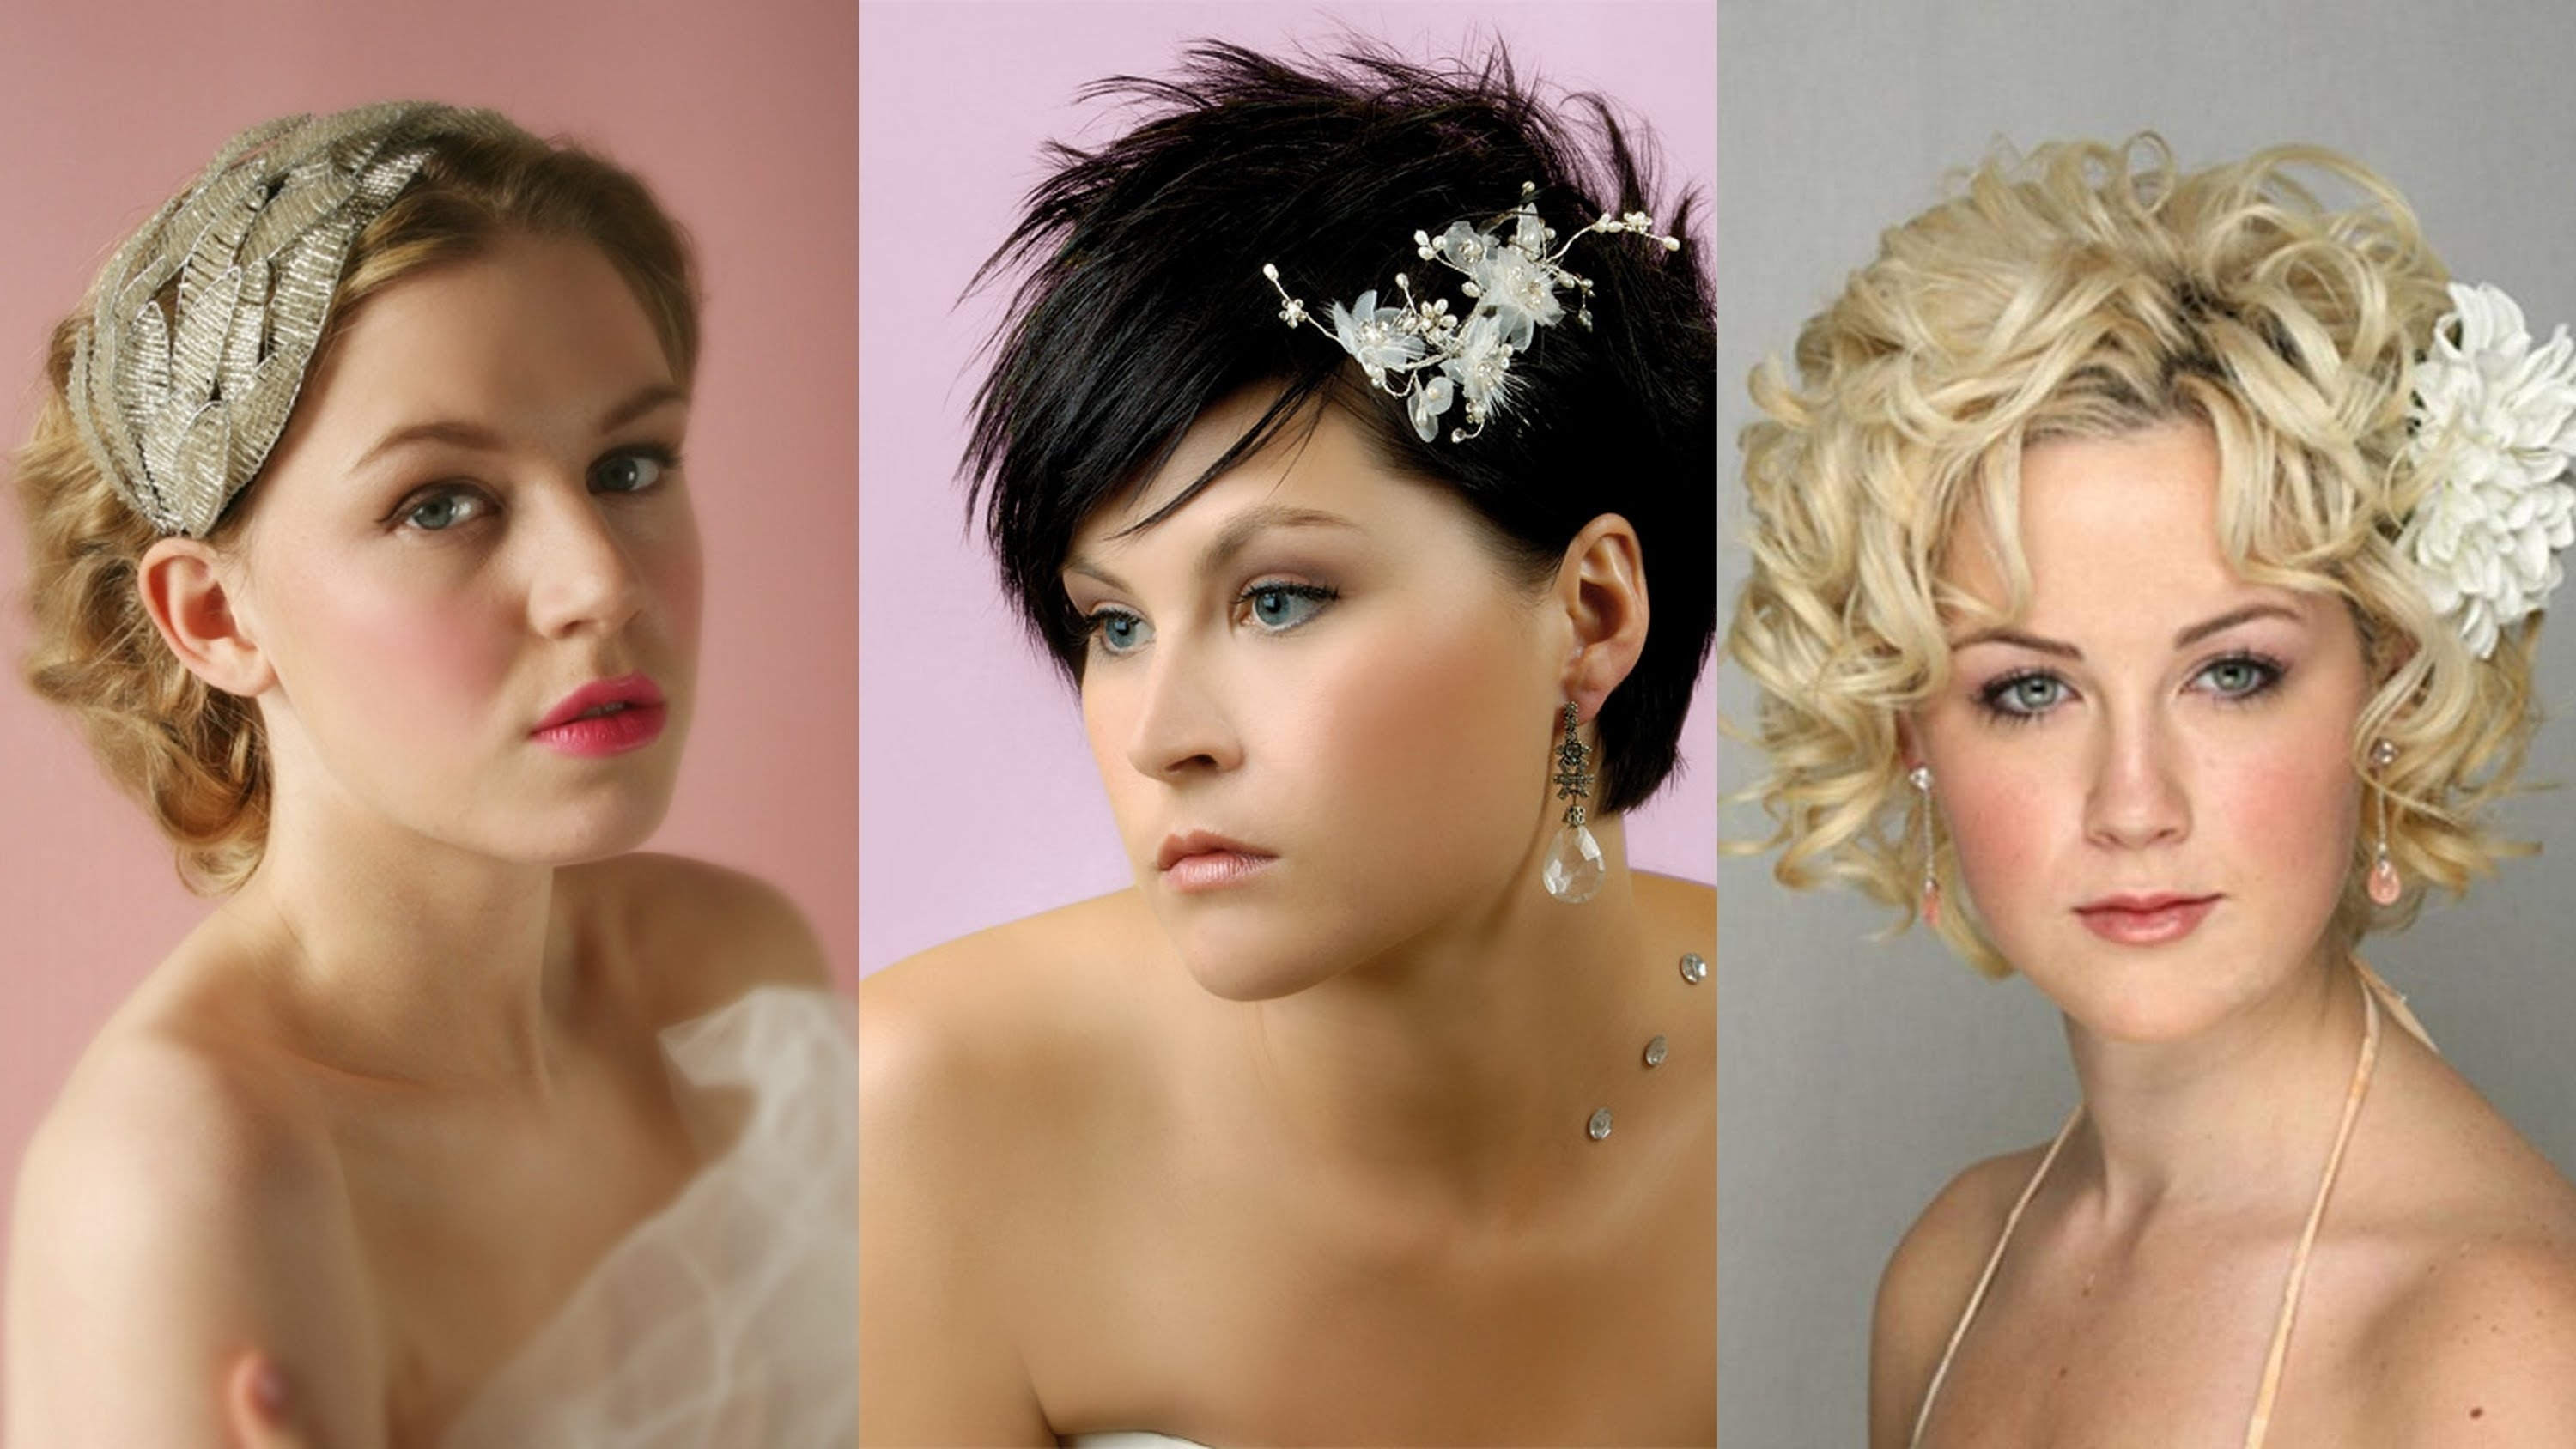 35 Lovely Wedding Hairstyles For Short Hair – Youtube Regarding Fashionable Indian Wedding Hairstyles For Short Curly Hair (View 2 of 15)